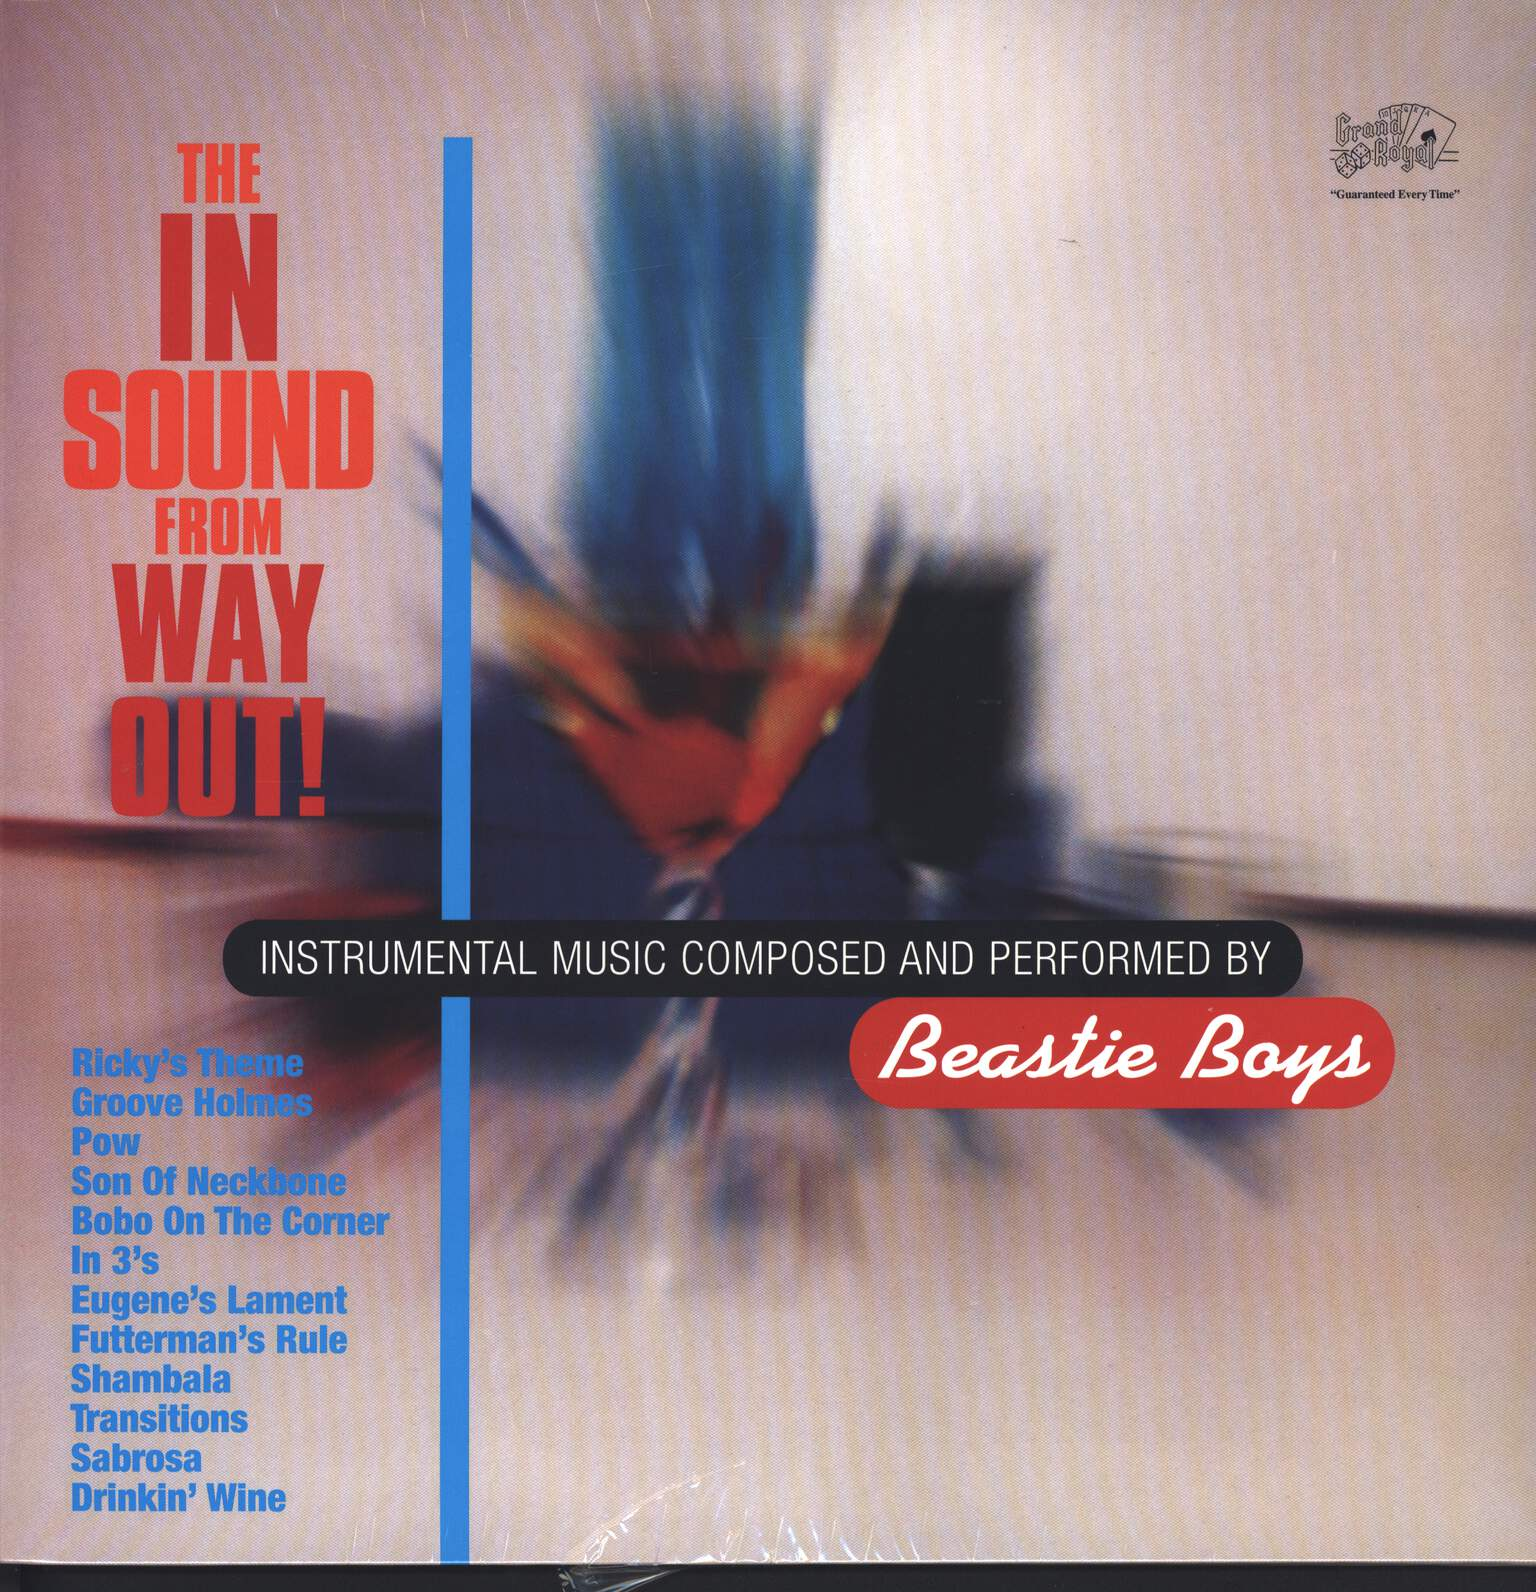 Beastie Boys: The In Sound From Way Out!, 1×LP (Vinyl)